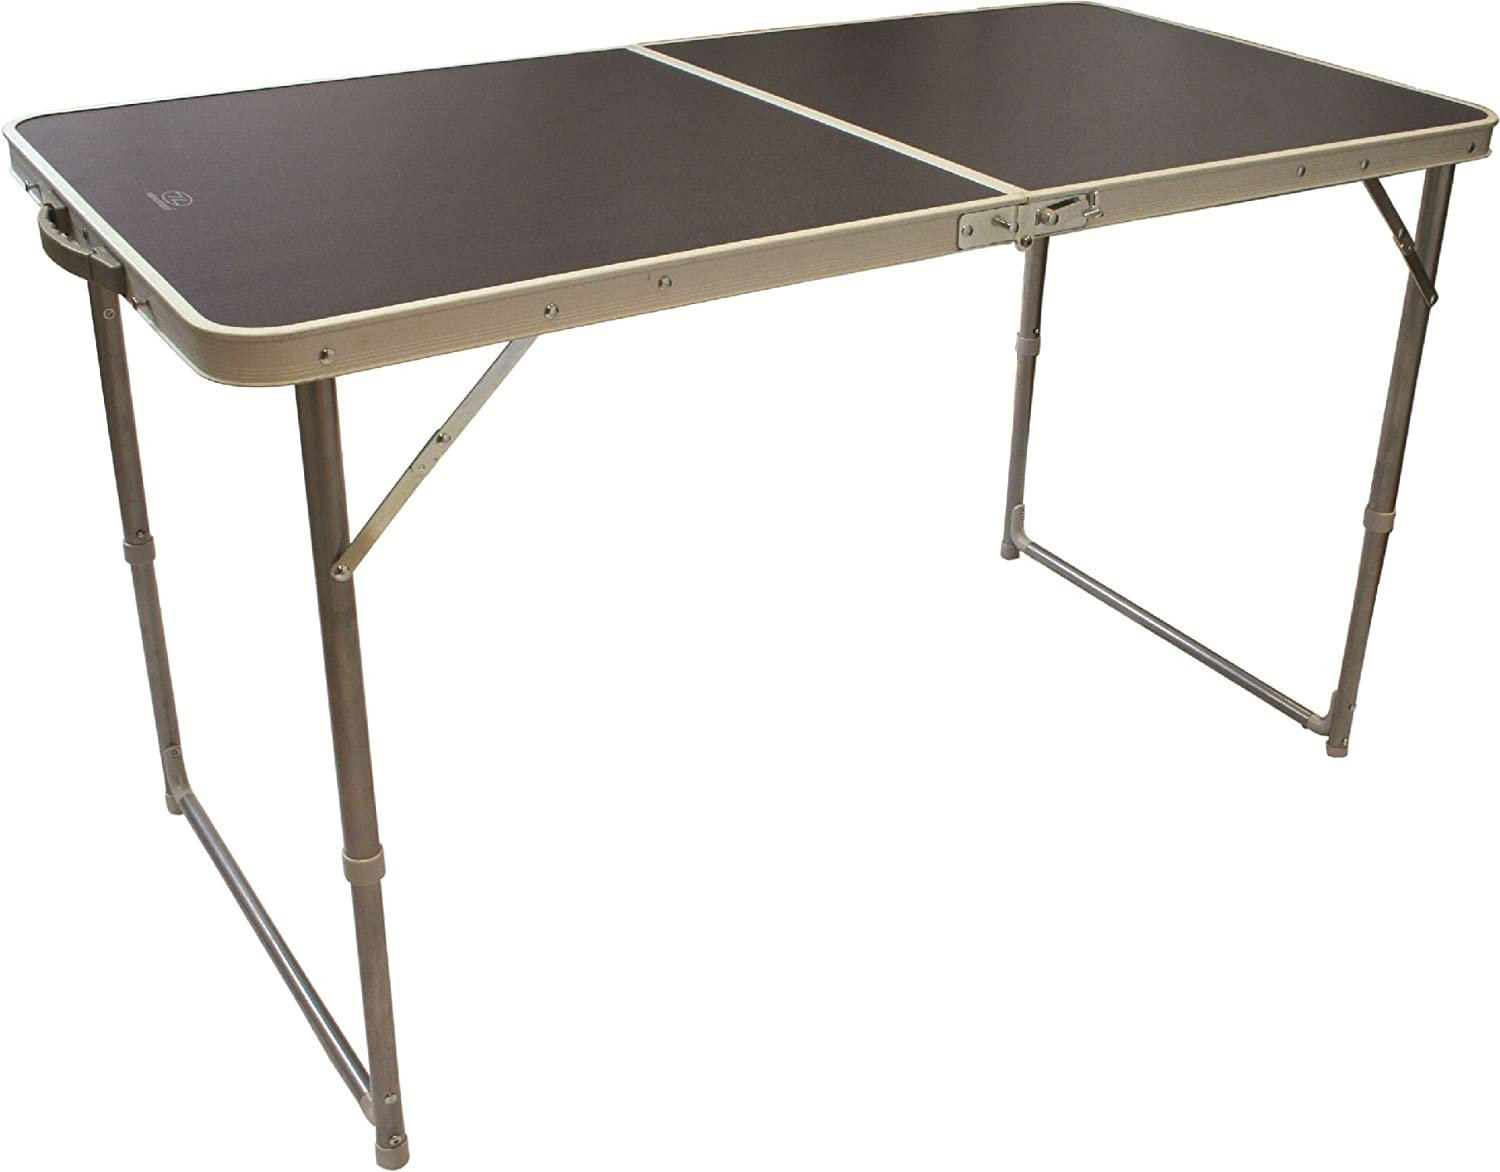 Highlander Compact Folding MDF Camping Table Double